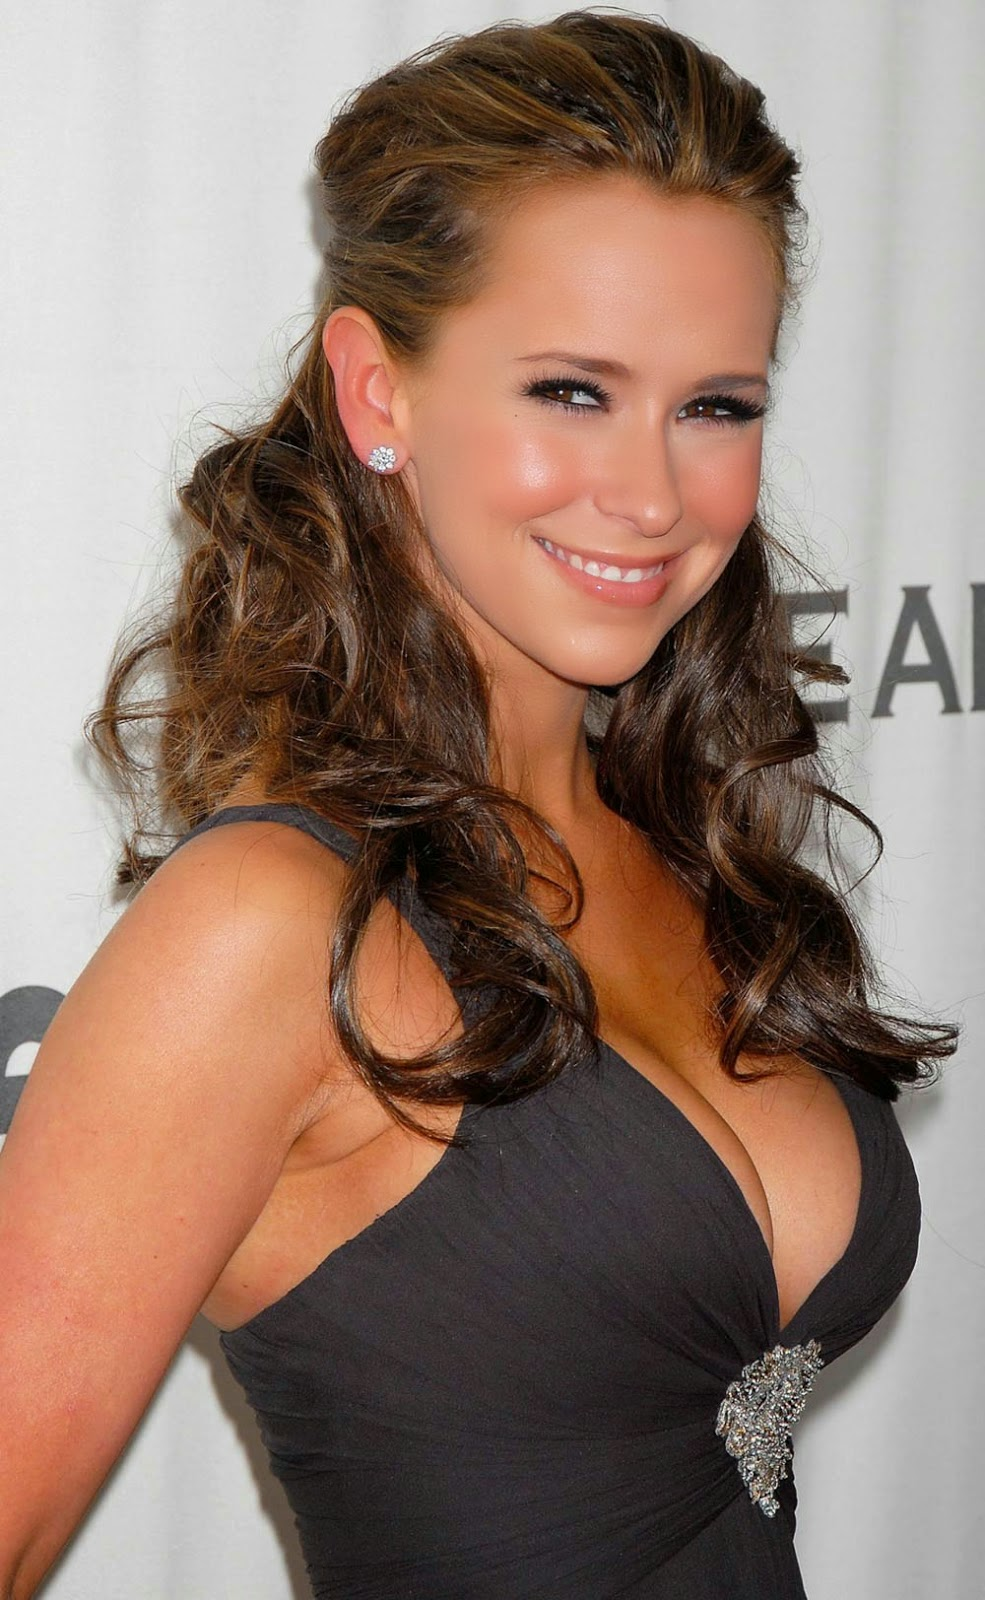 HD WALLPAPERS FREE DOWNLOAD: Jennifer Love Hewitt HD Wallpapers Free Download